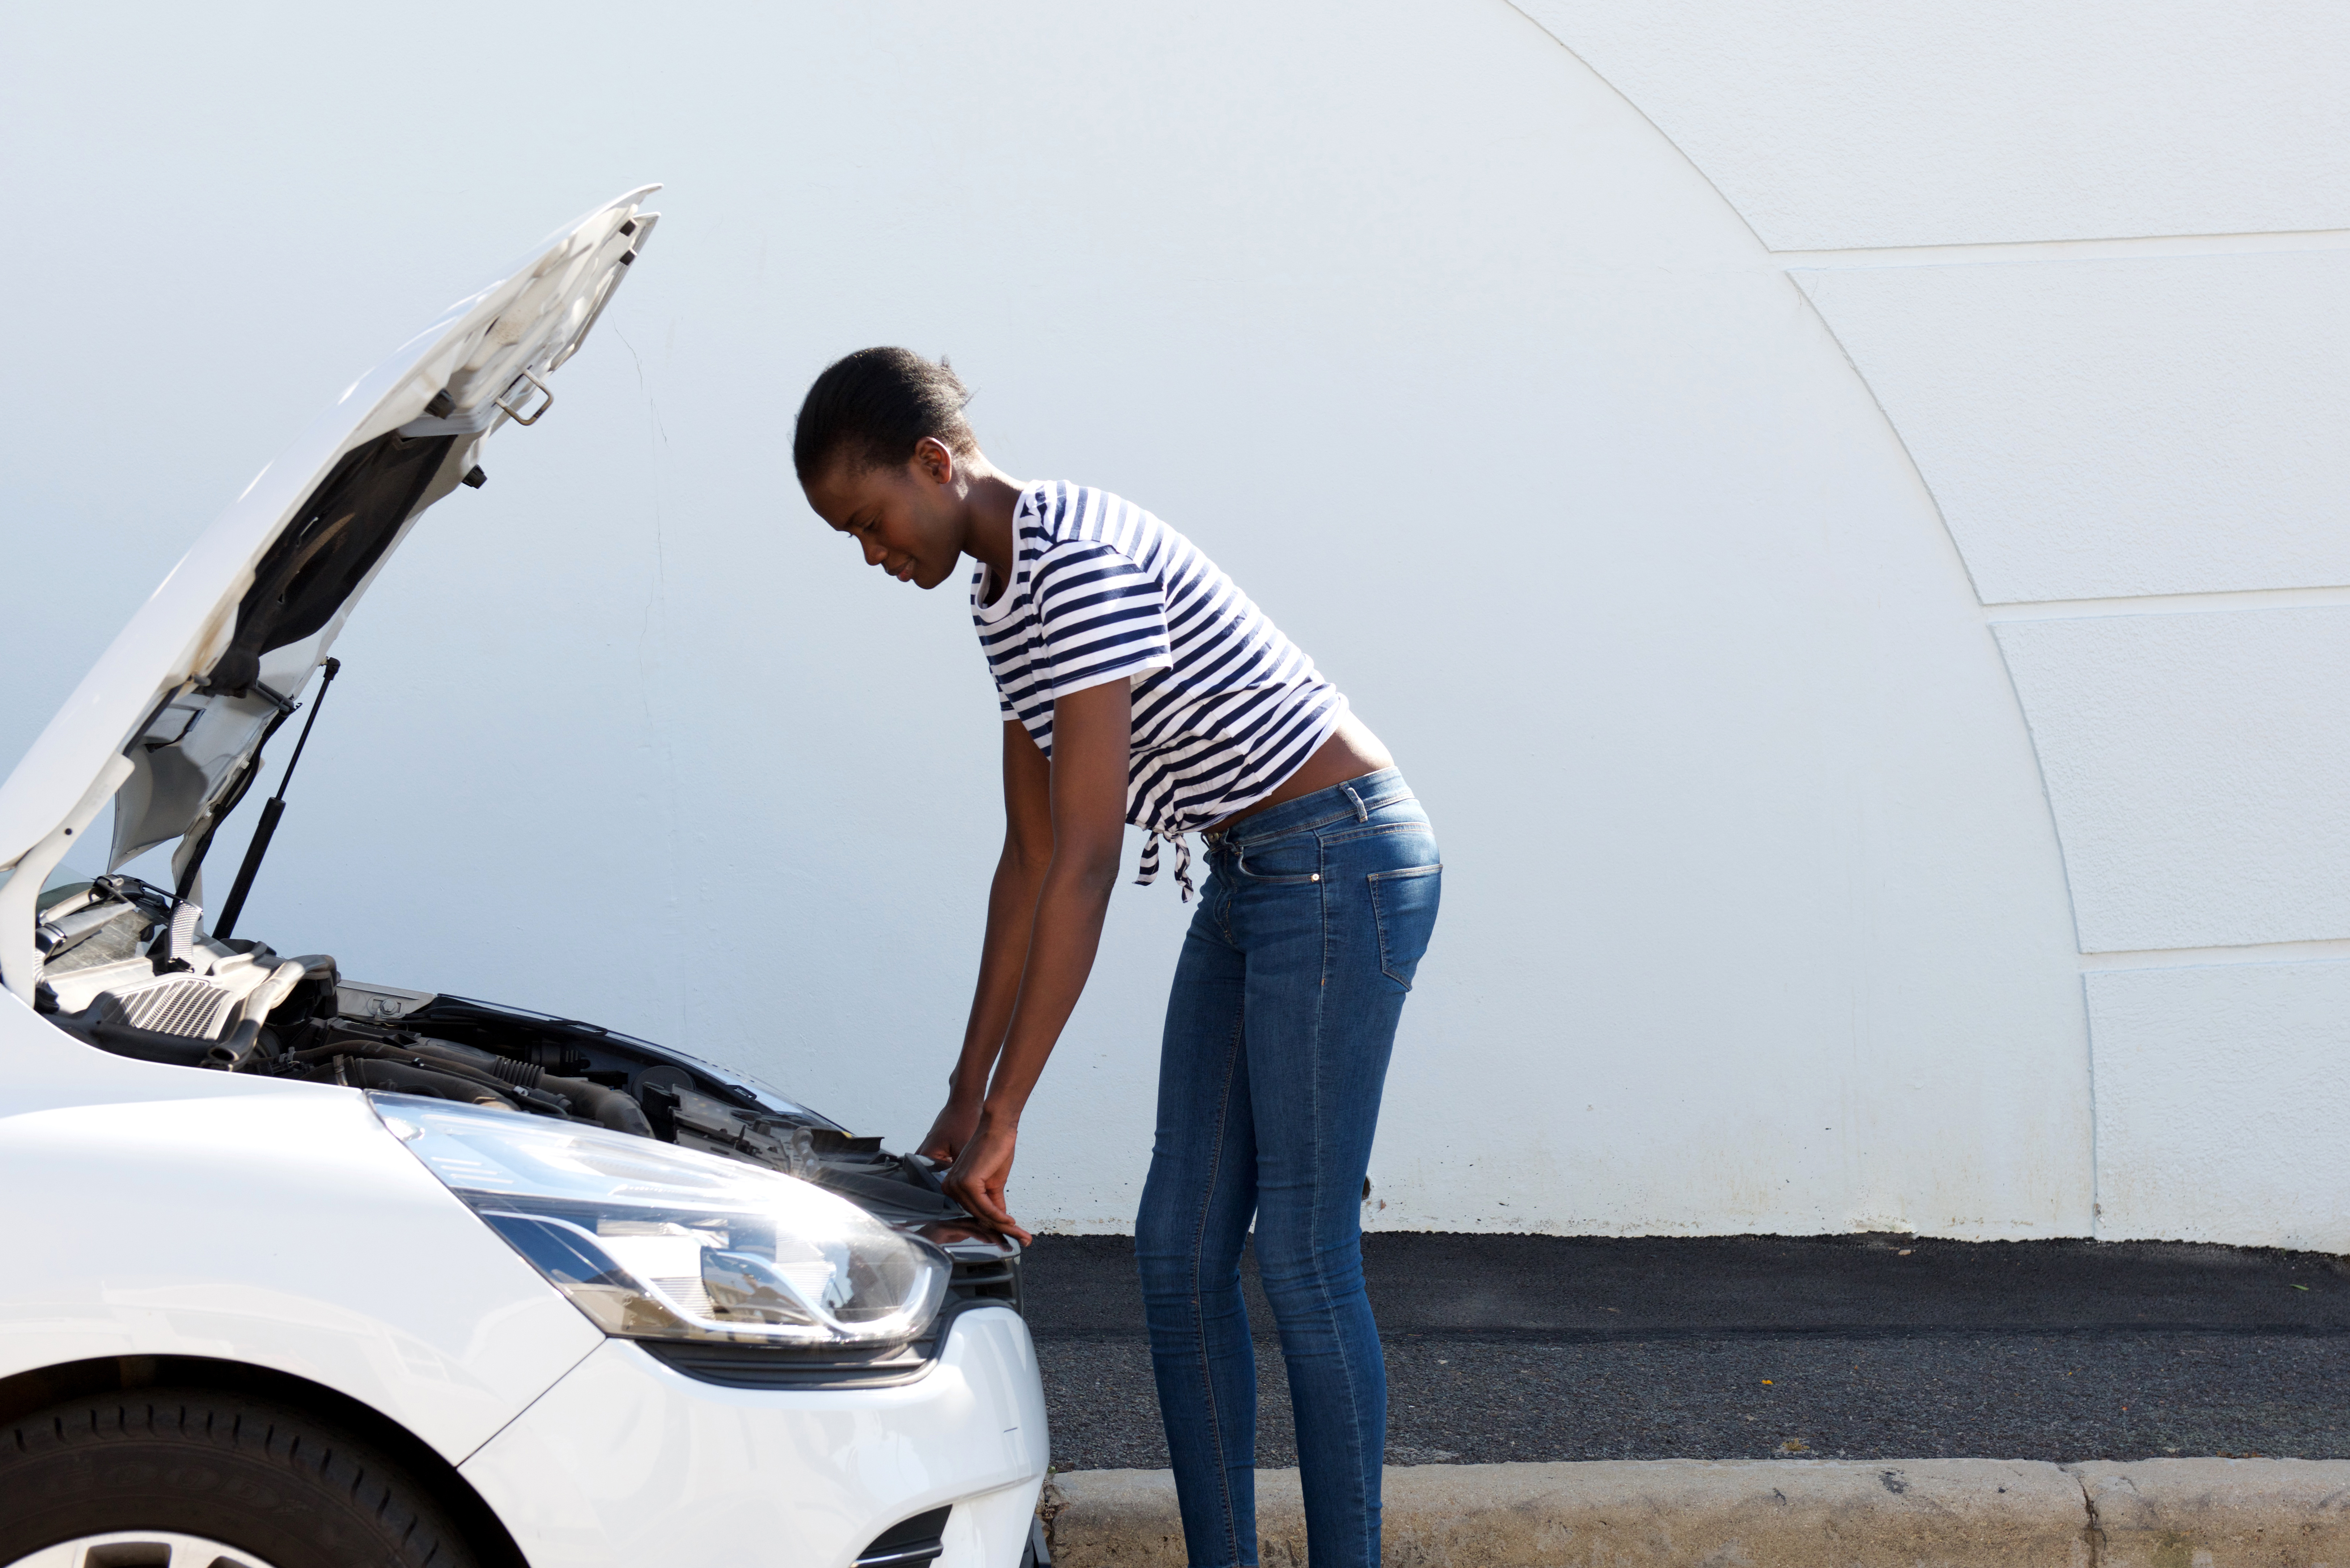 On the Road, Roadside Assistance, Car Trouble